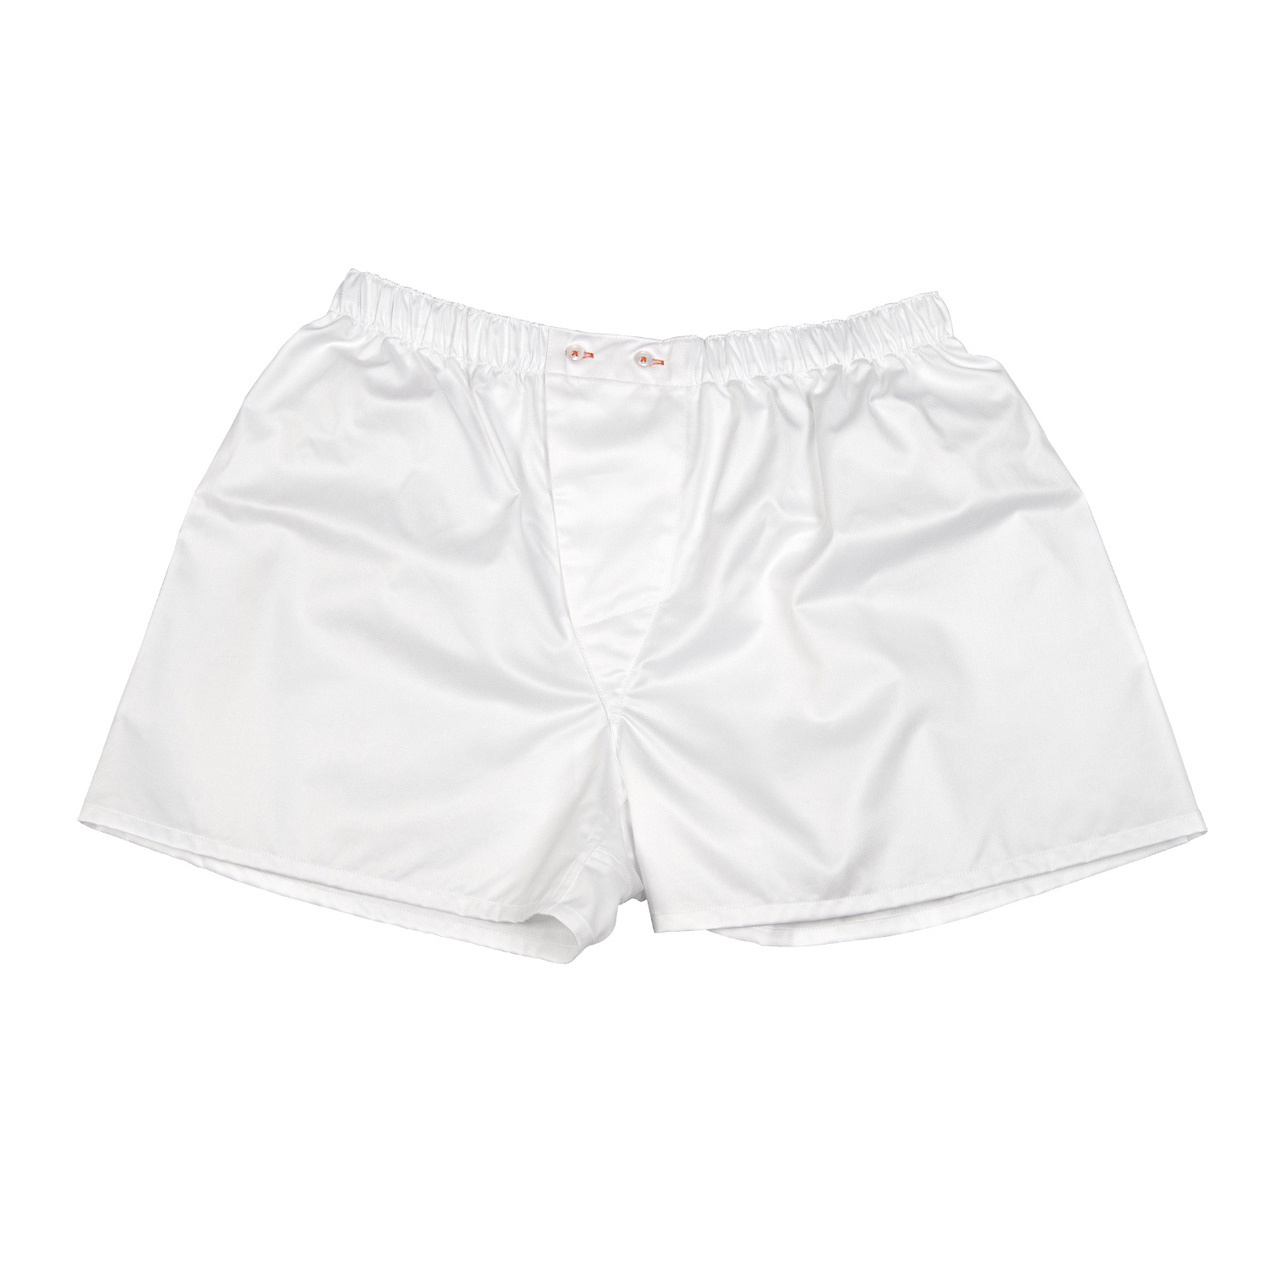 the perfect boxer shorts